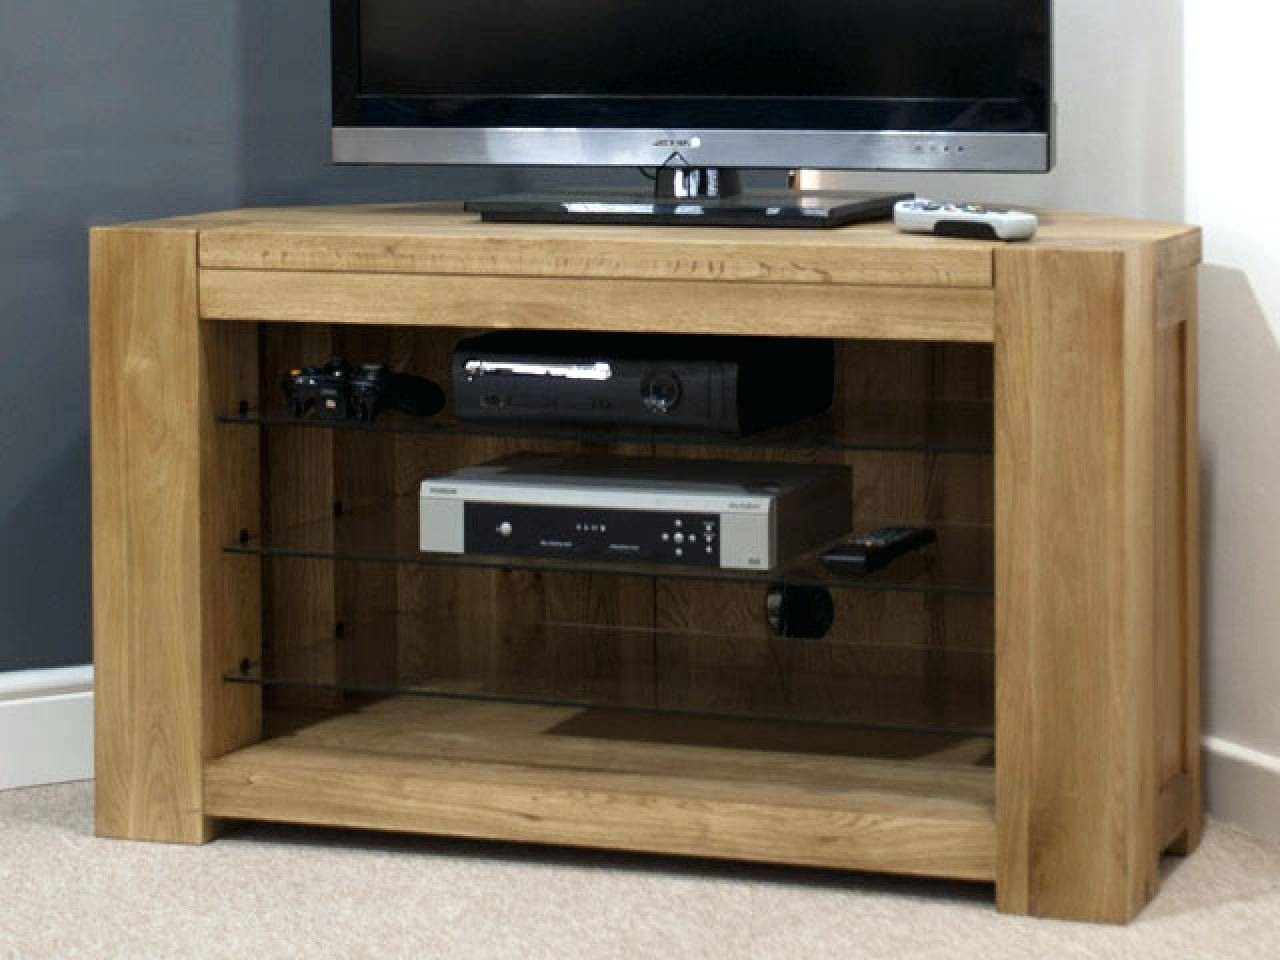 Tv Stand : Oak Corner Tv Stands For Flat Screens Tv Cabinets Oak within Chunky Tv Cabinets (Image 15 of 15)